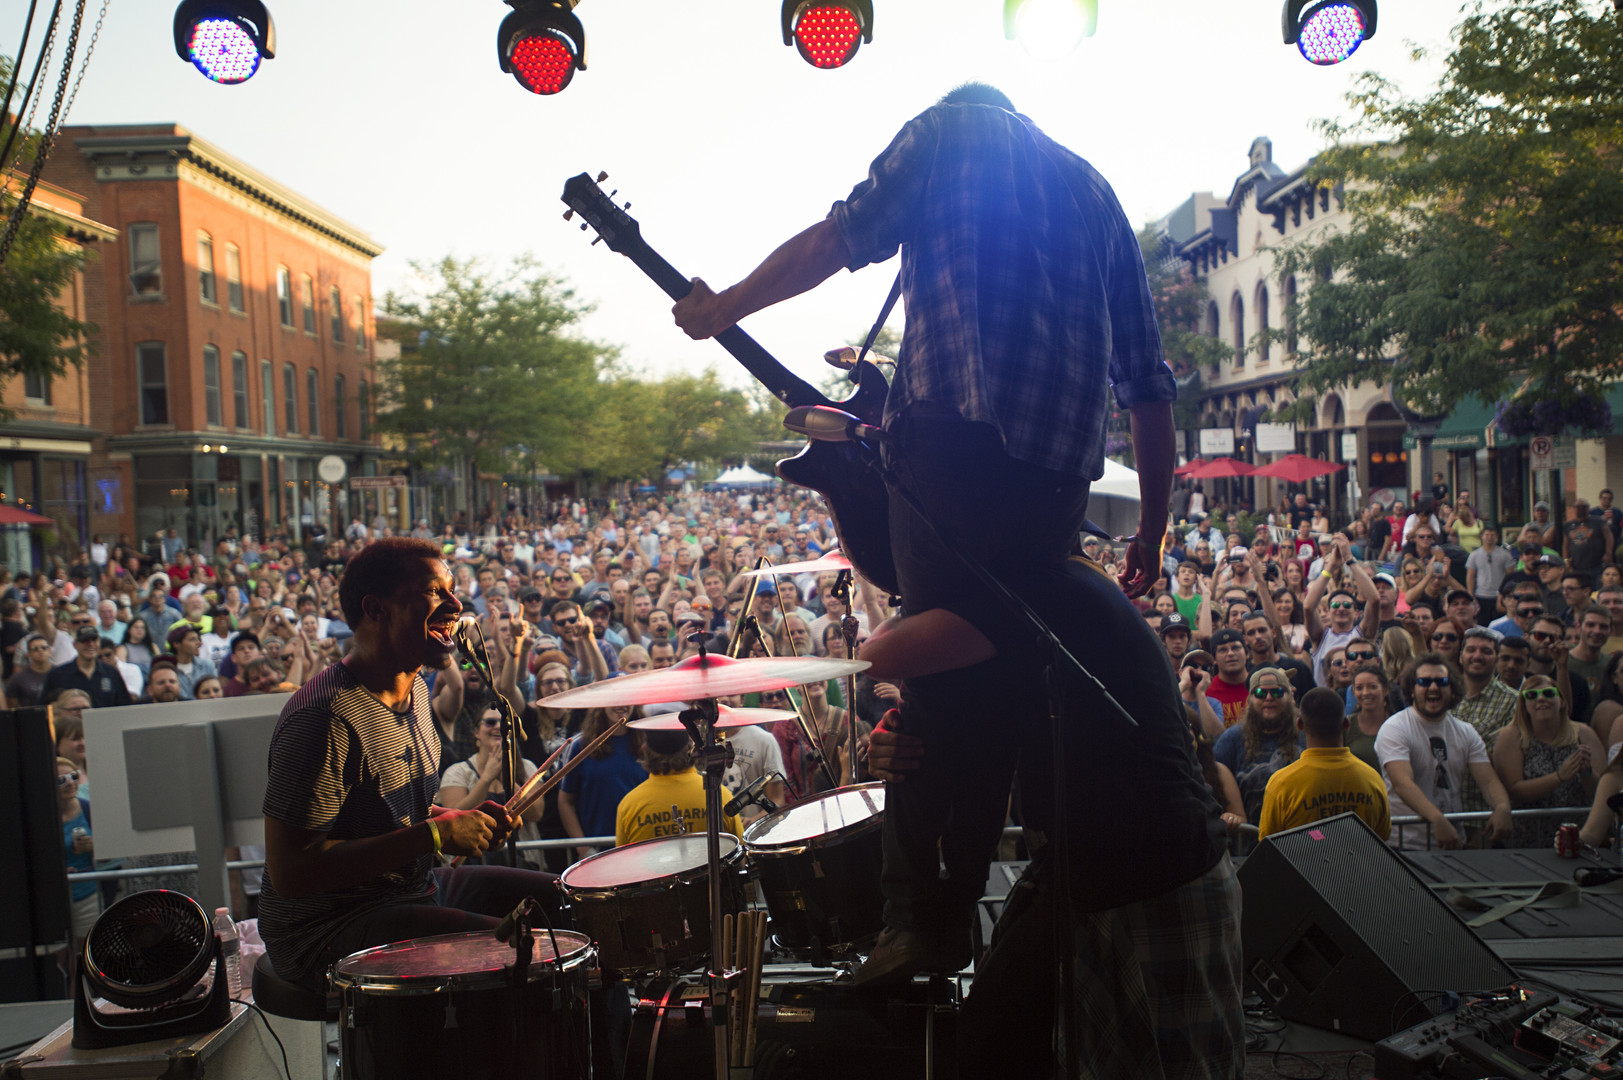 In the Whale guitarist Nate Valdez is lifted in the air by Brandon Whalen as they perform on Linden Street during Bohemian Nights at NewWestFest on Aug. 13, 2016. In the Whale guitarist Nate Valdez is lifted in the air by Brandon Whalen as they perform on Linden Street during Bohemian Nights at NewWestFest Saturday, August 13, 2016.